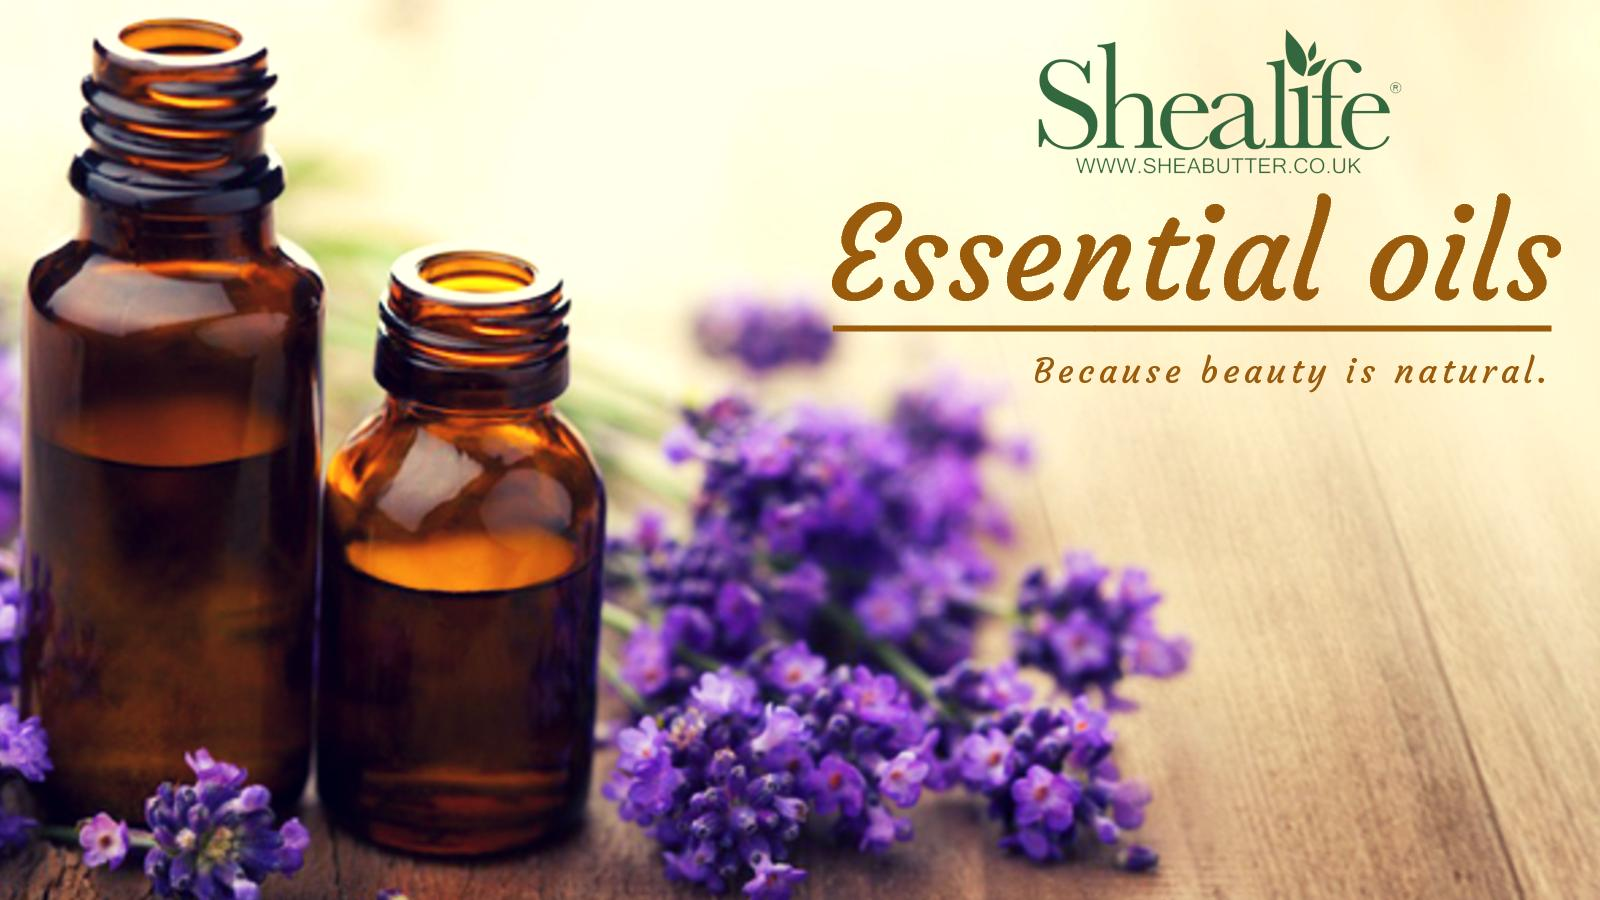 Use and Benefits of Pure and Natural Shealife Essential Oils